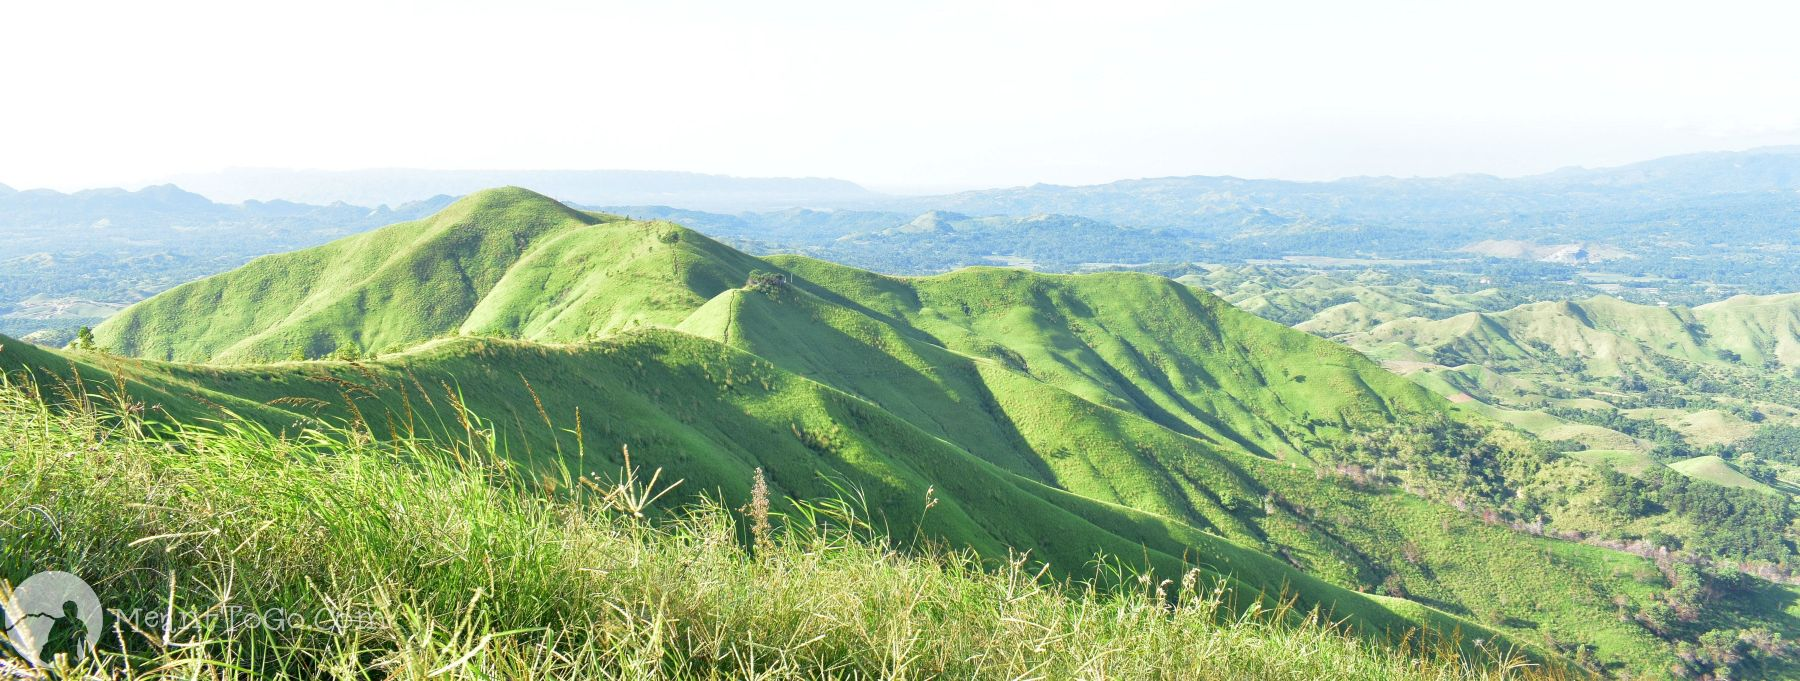 Binabaje Hills aka Alicia Panoramic Park, Alicia, Bohol, Philippines